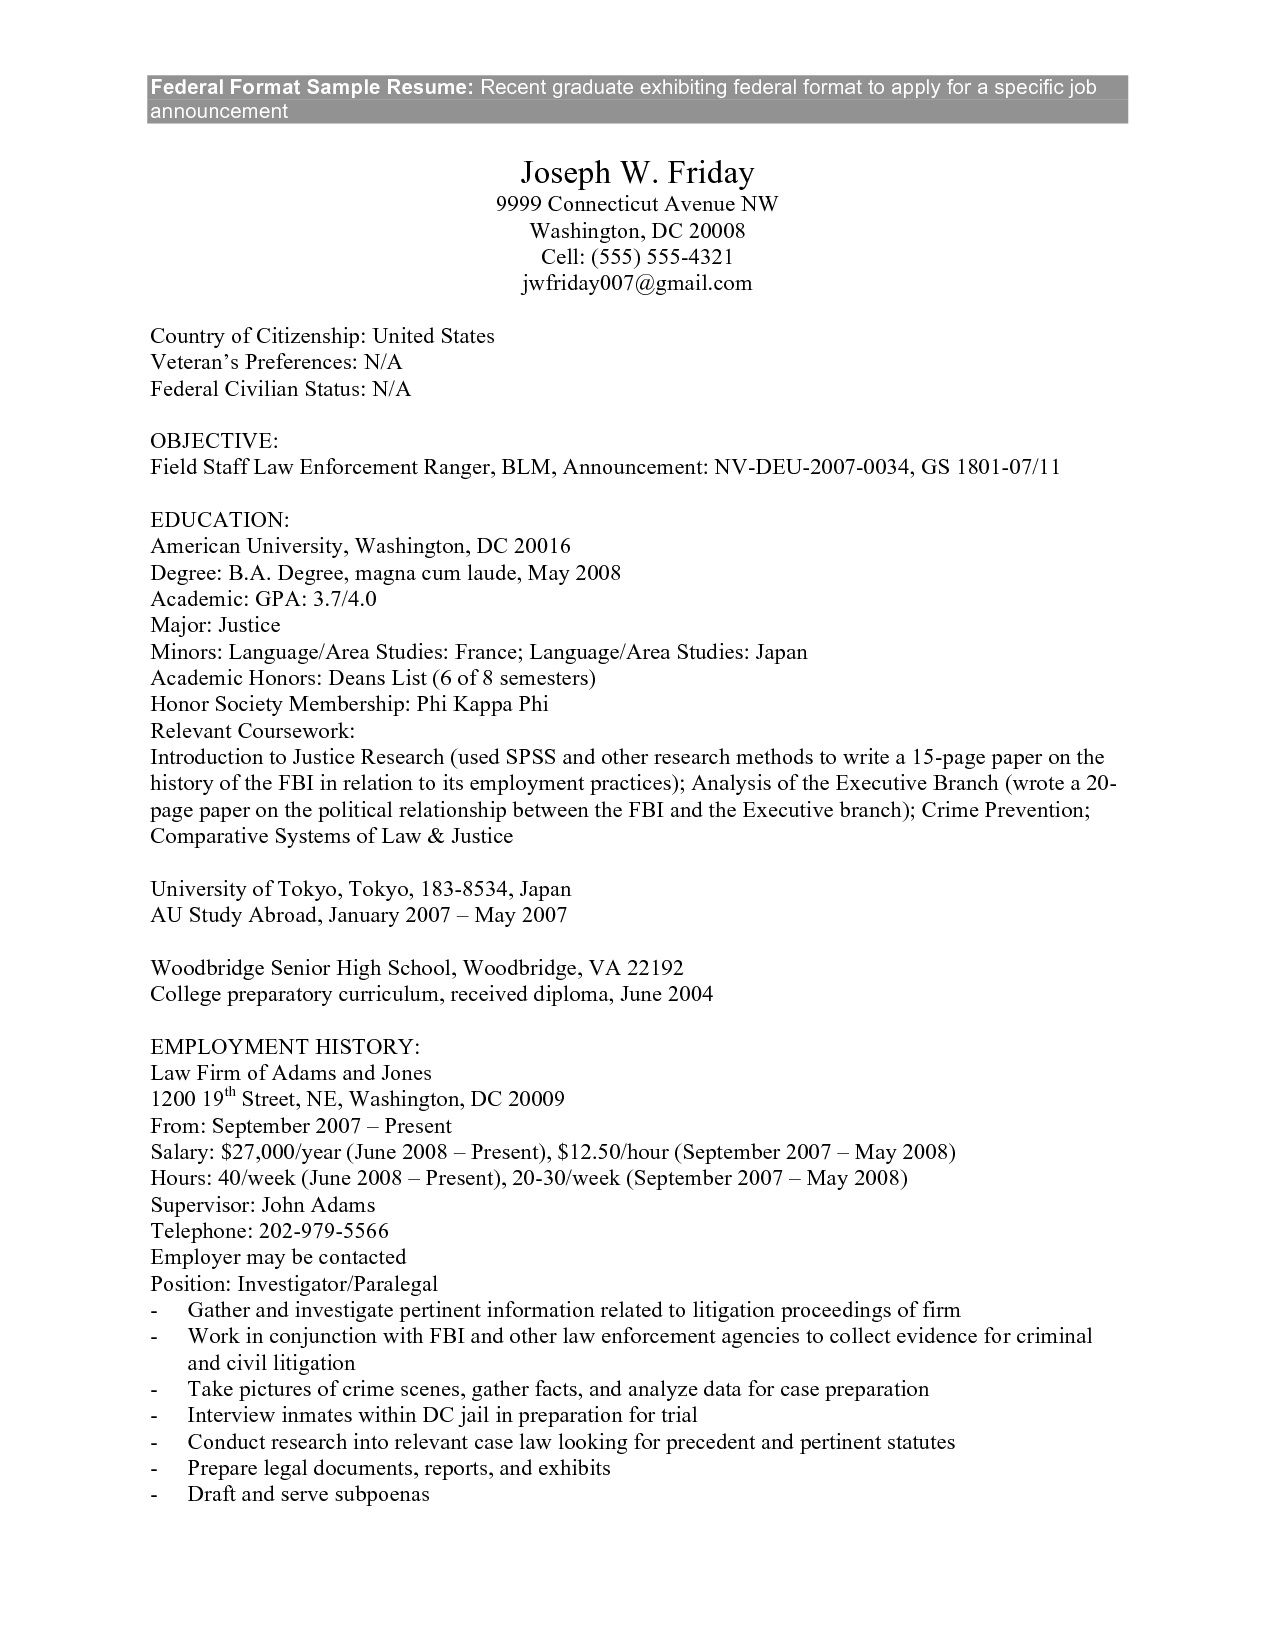 Elegant Federal Government Resume Example   Federal Government Resume Example Are  Examples We Provide As Reference To Make Correct And Good Quality Resume.